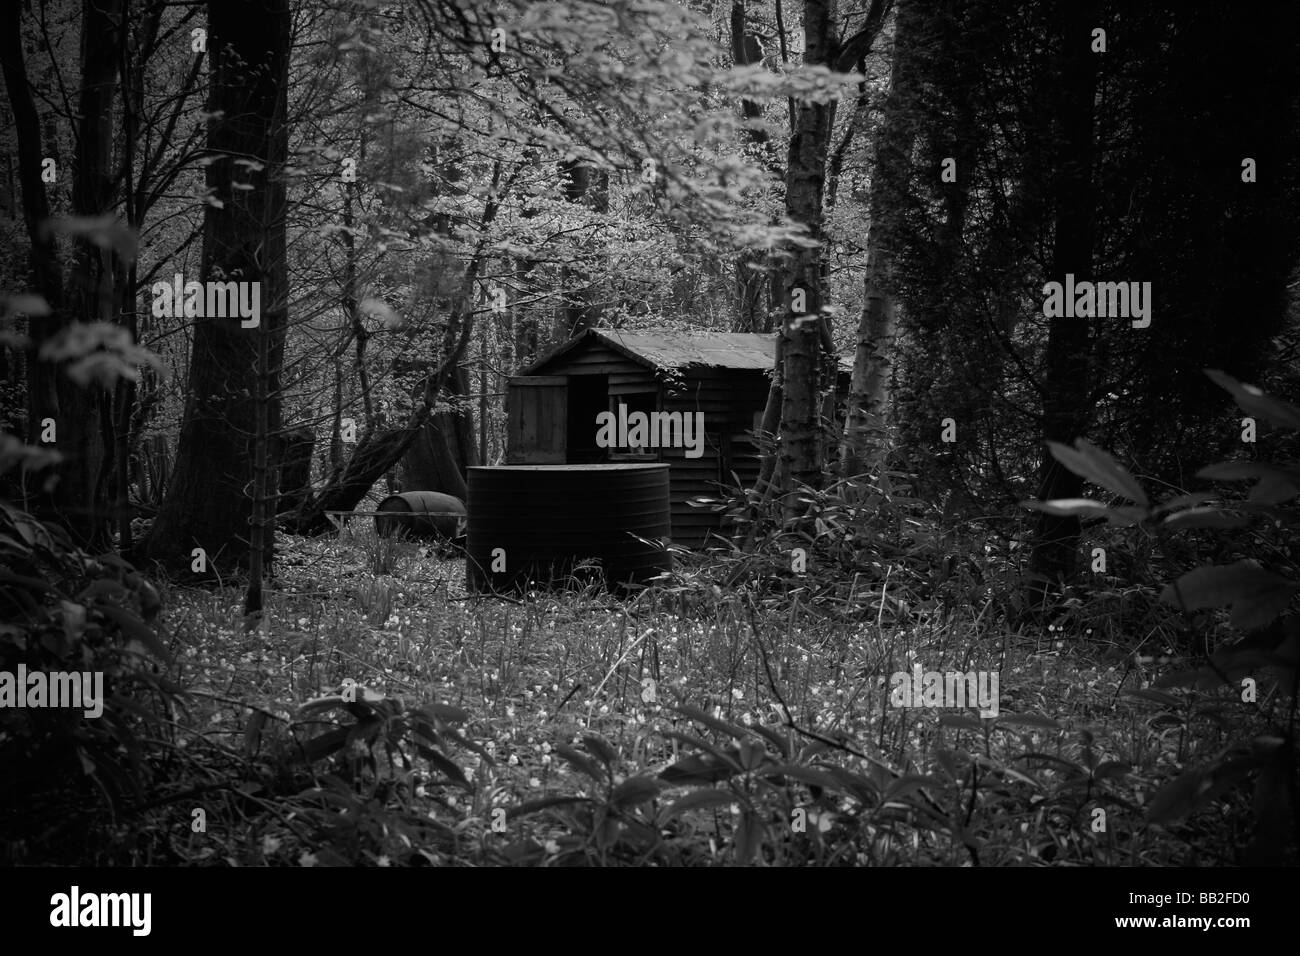 Spooky shack in the woods - Stock Image